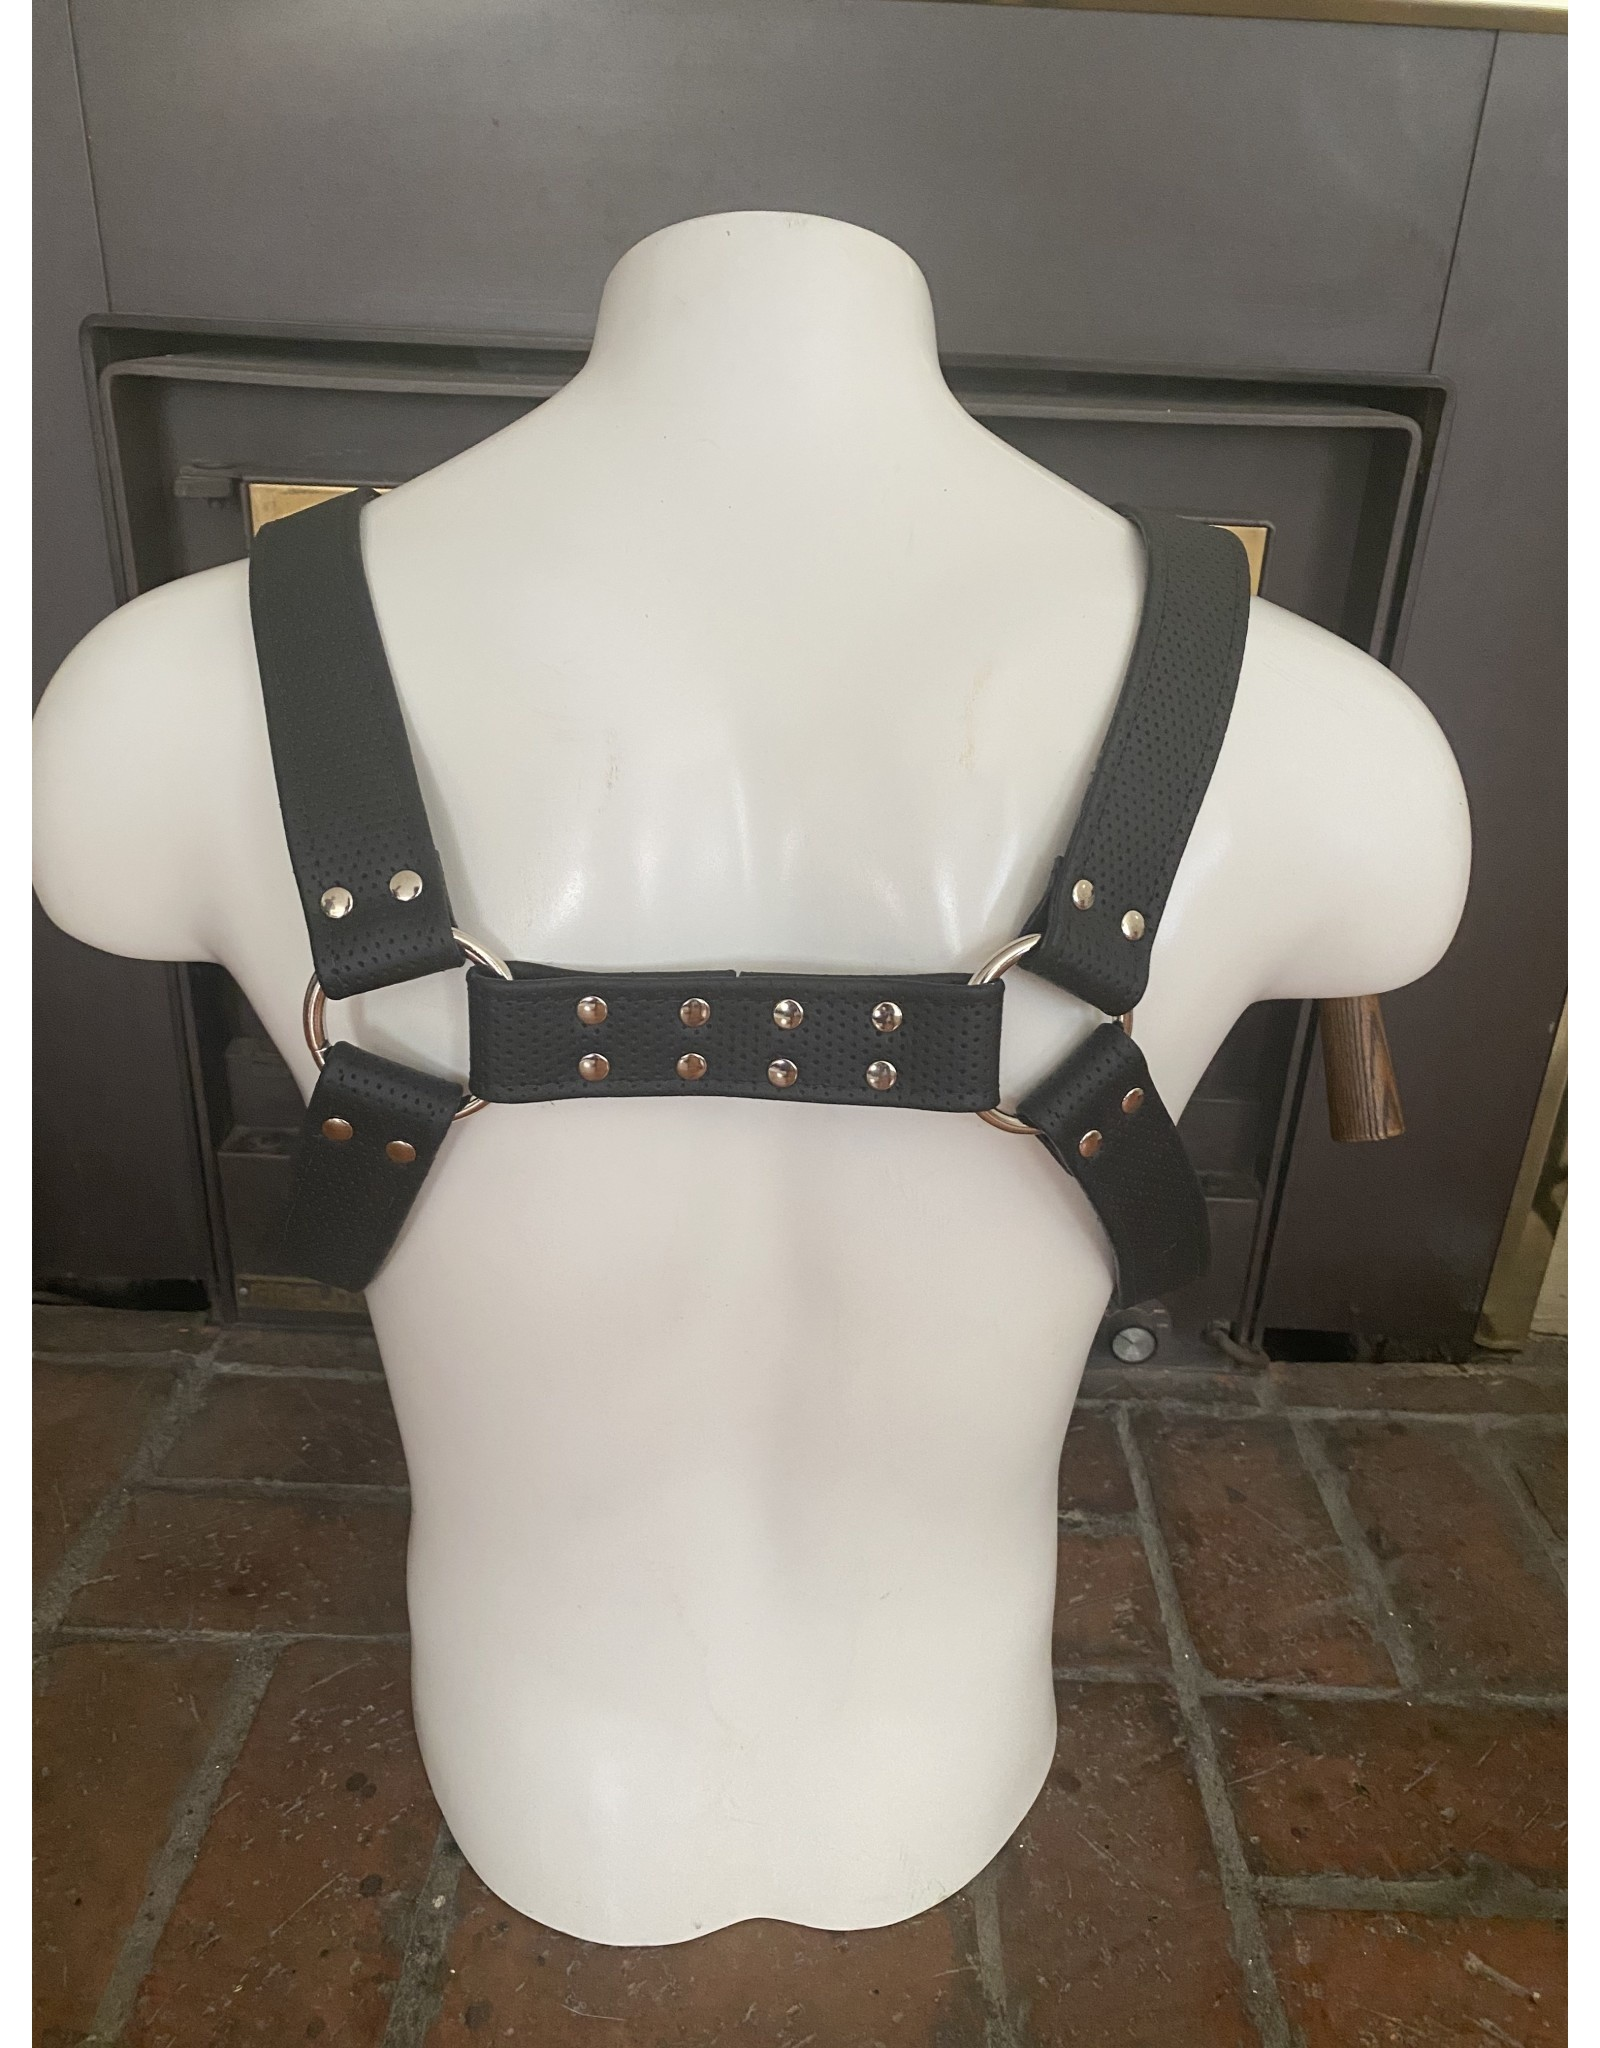 The Leather Union Bull Dog Harness